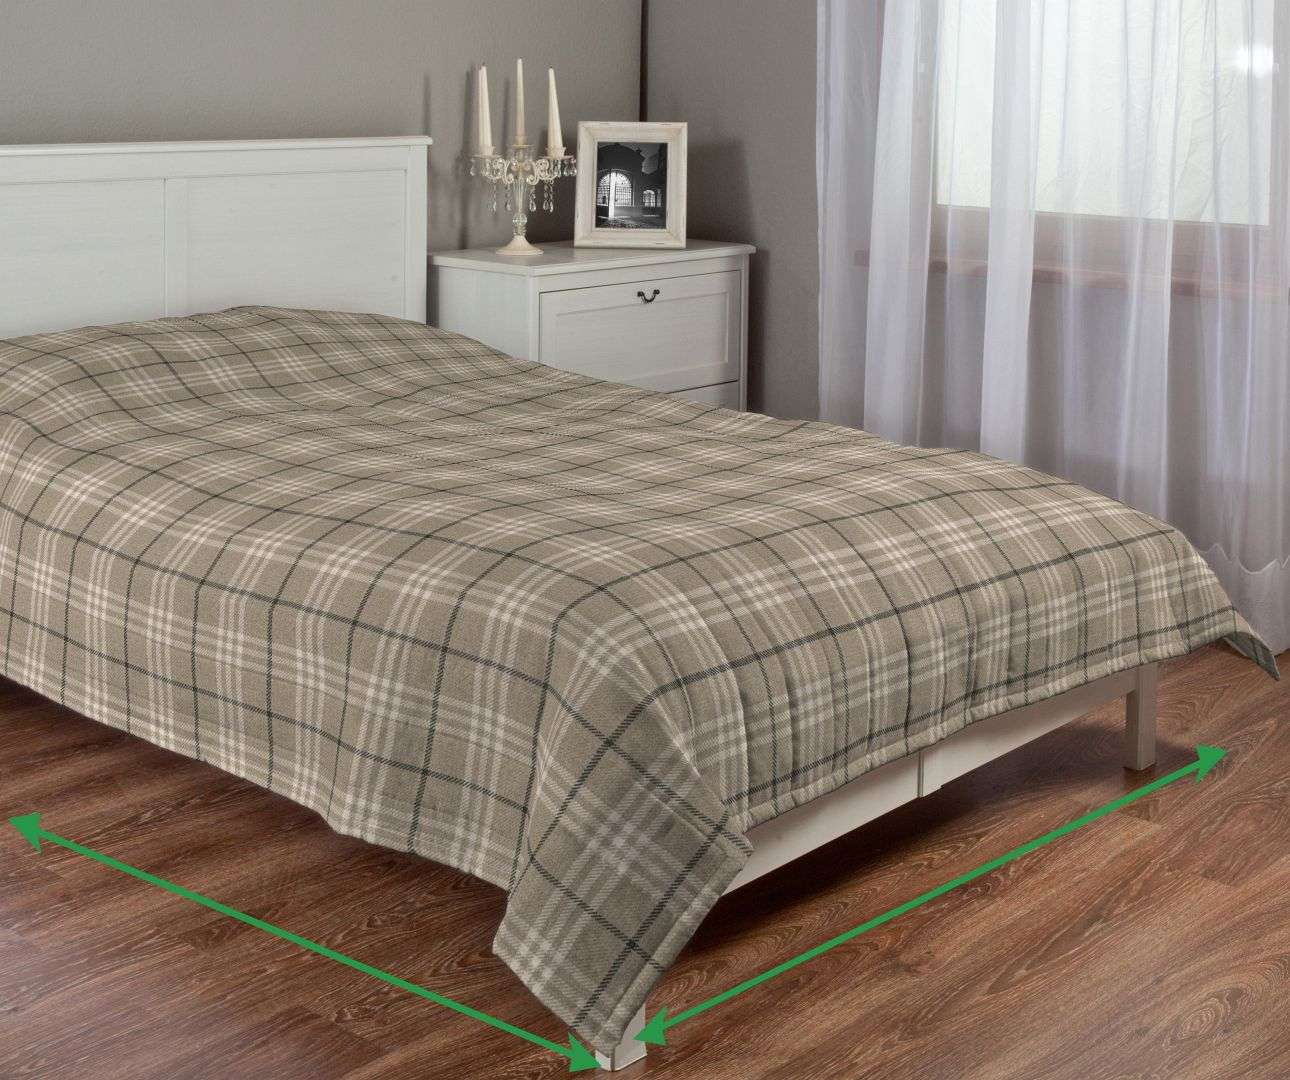 Quilted throw (vertical quilt pattern) in collection Edinburgh, fabric: 703-11